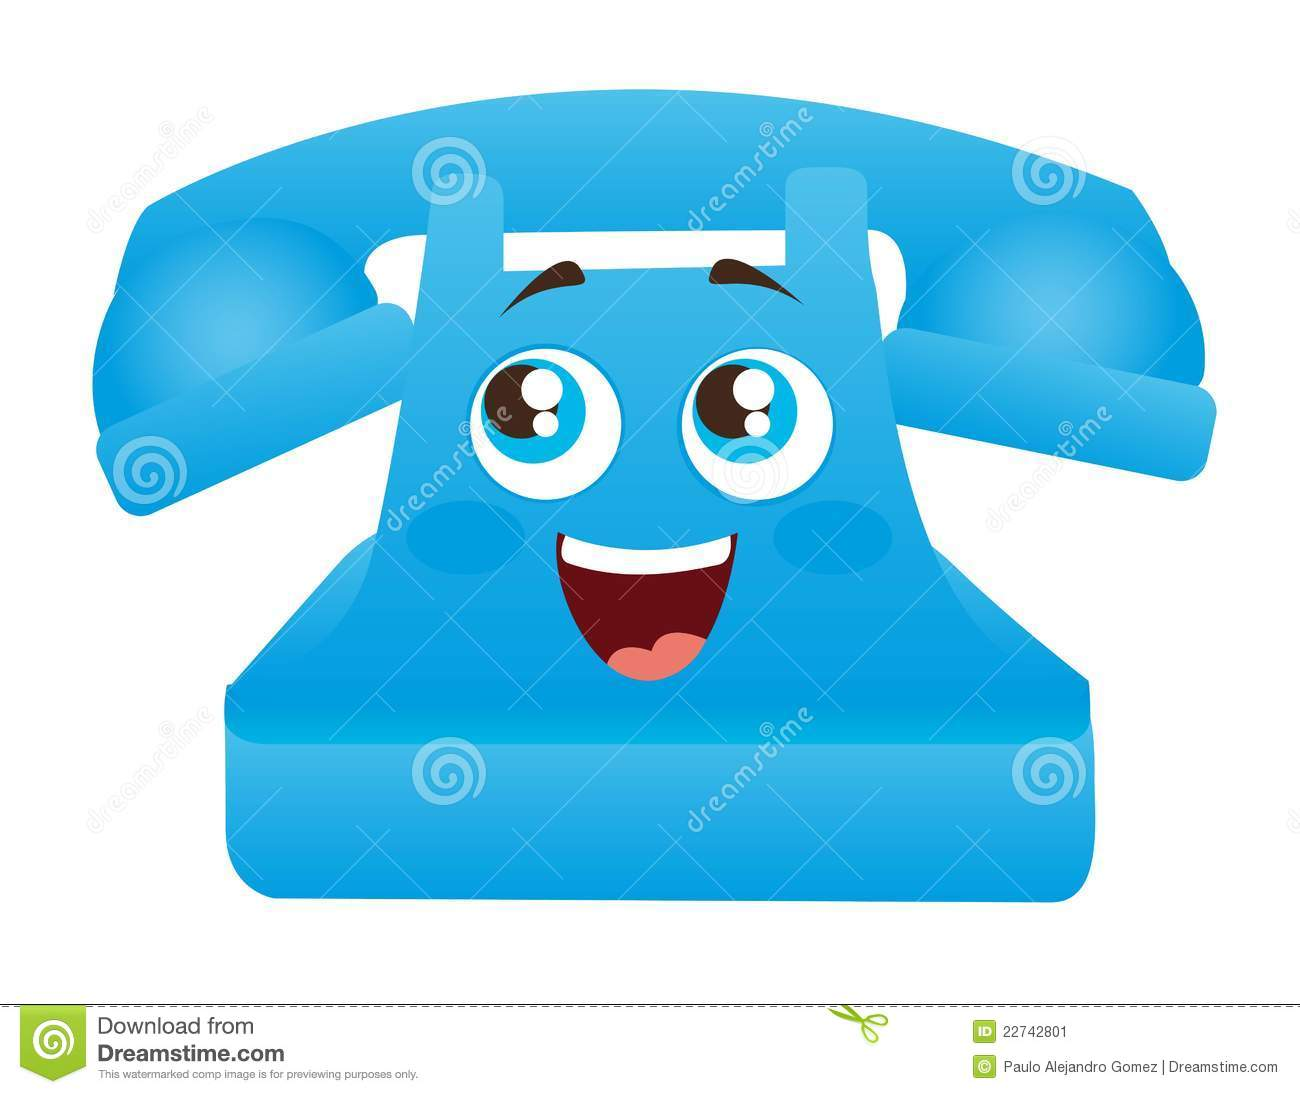 Blue telephone cartoon with eyes and mouth vector illustration.